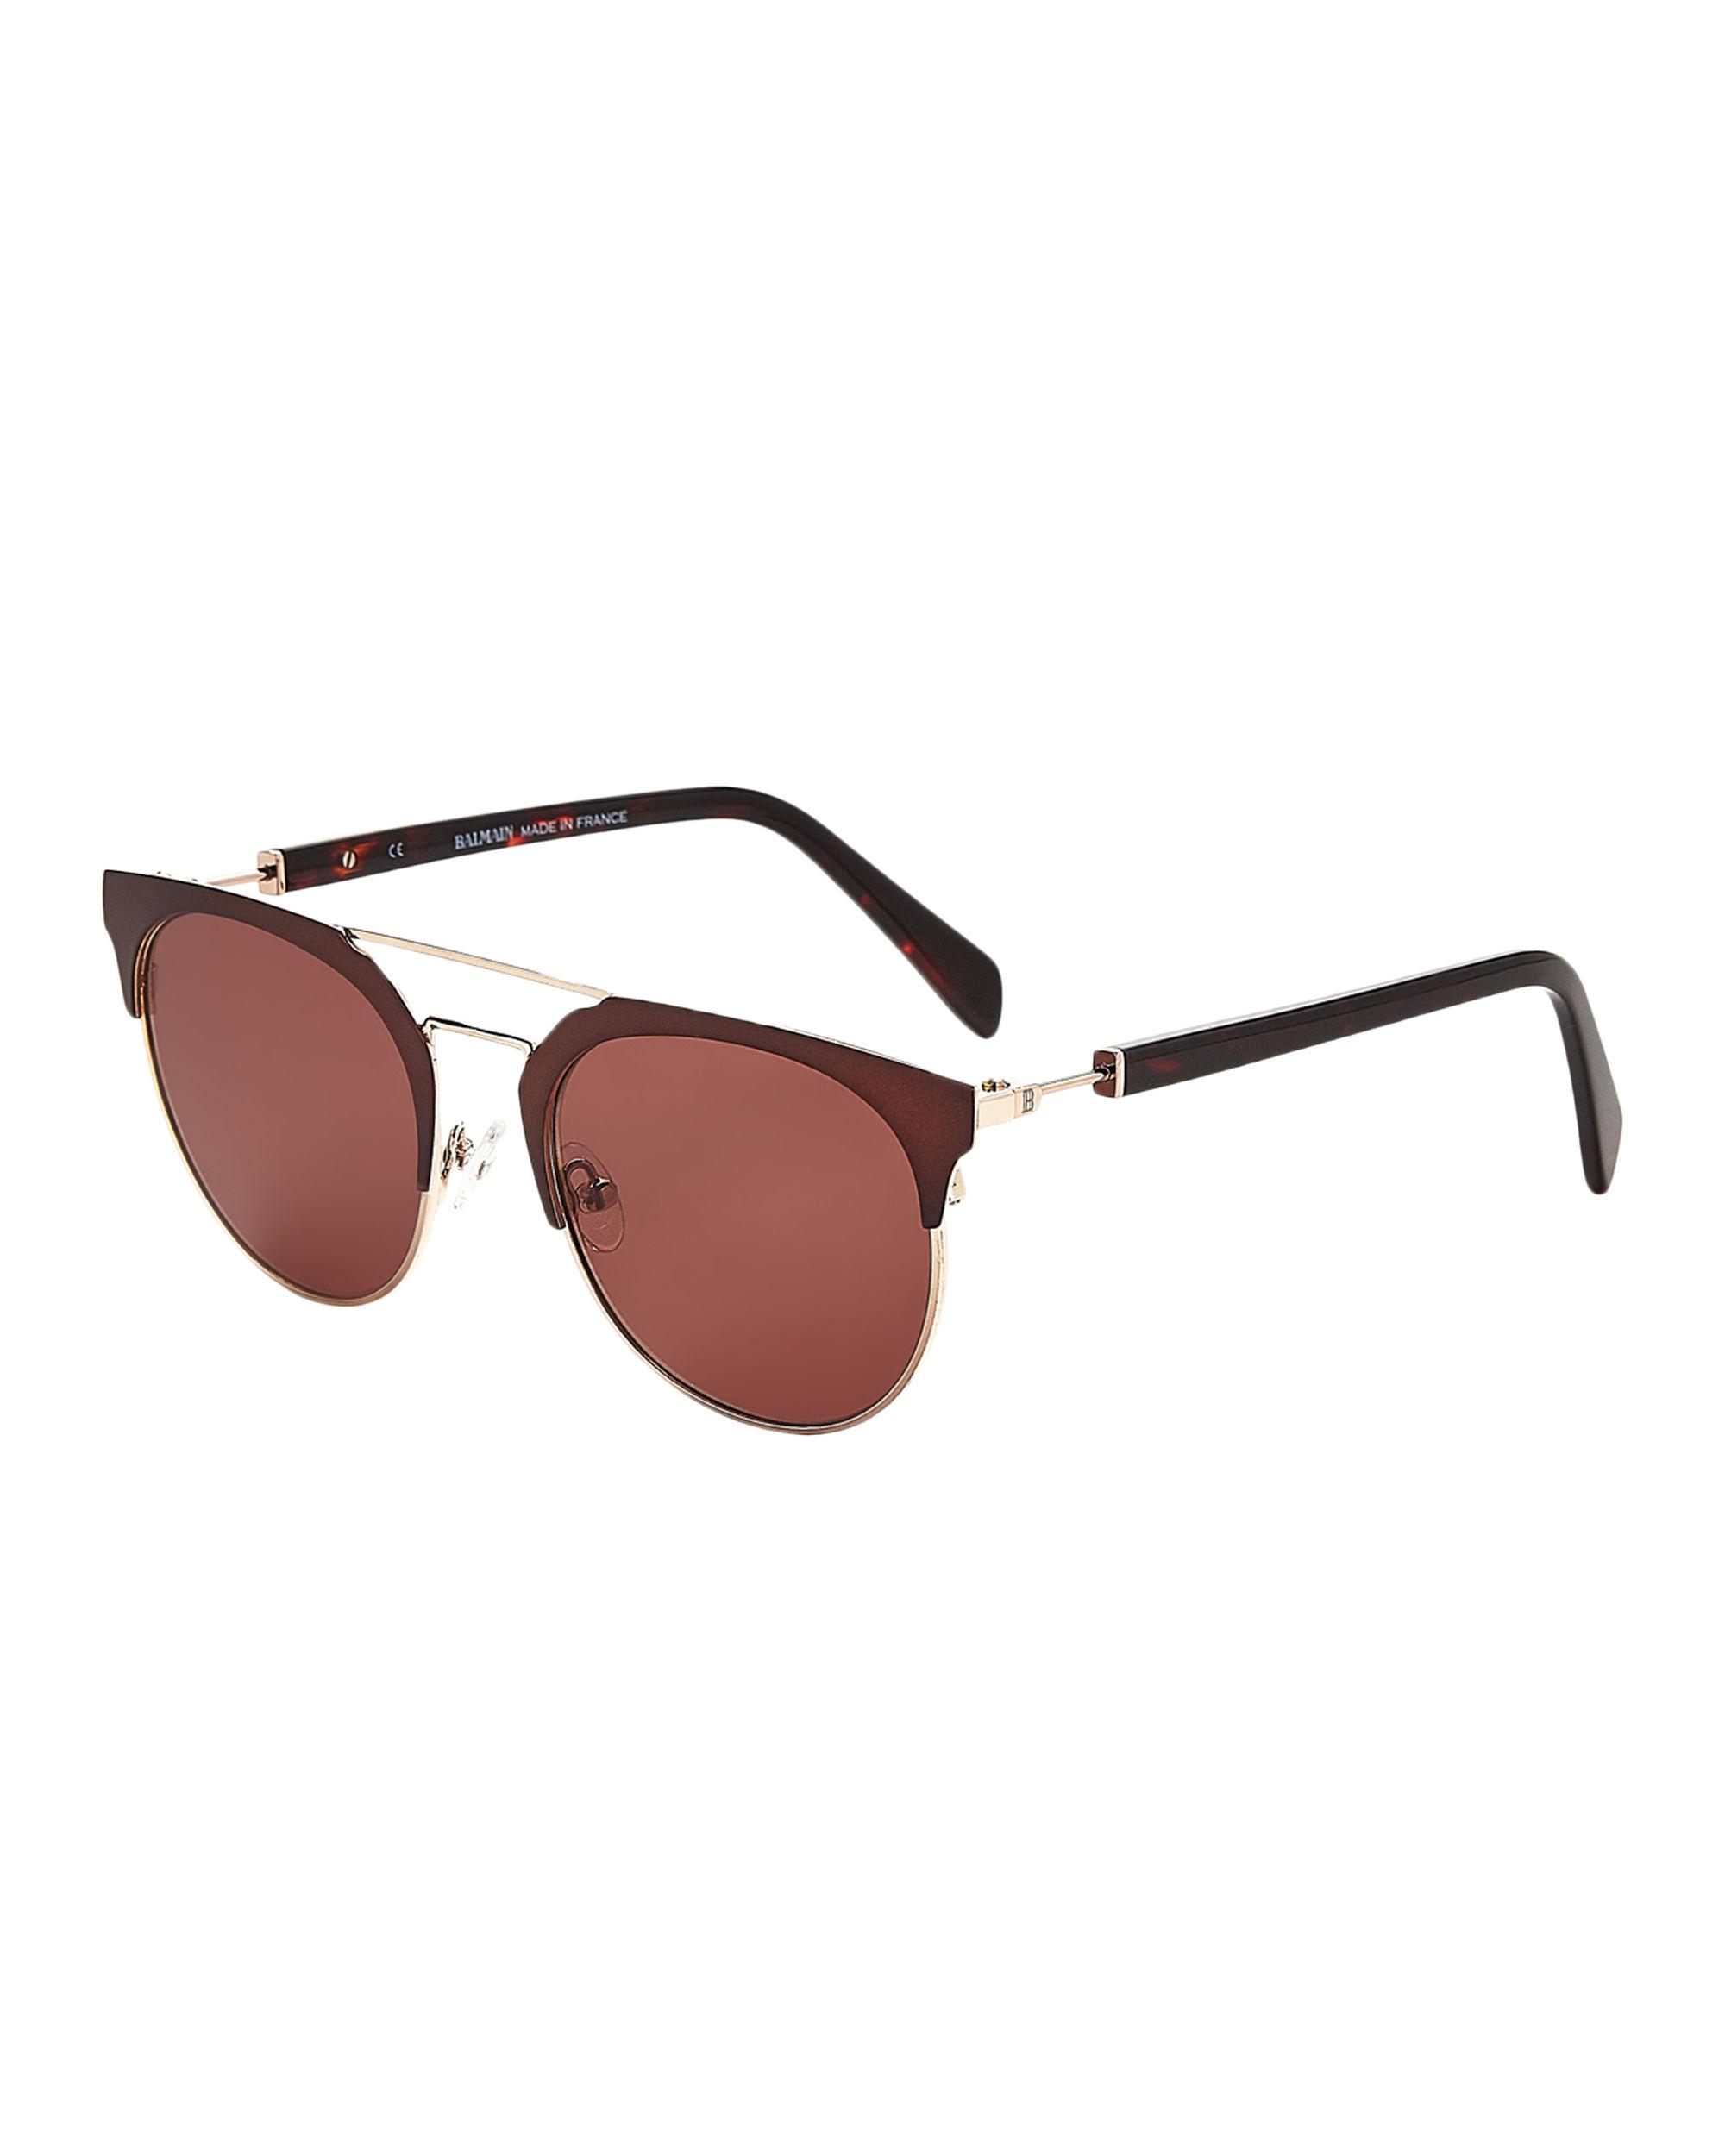 79be6a0fef Lyst - Balmain Bl2109 Brown   Gold-tone Round Sunglasses in Brown ...